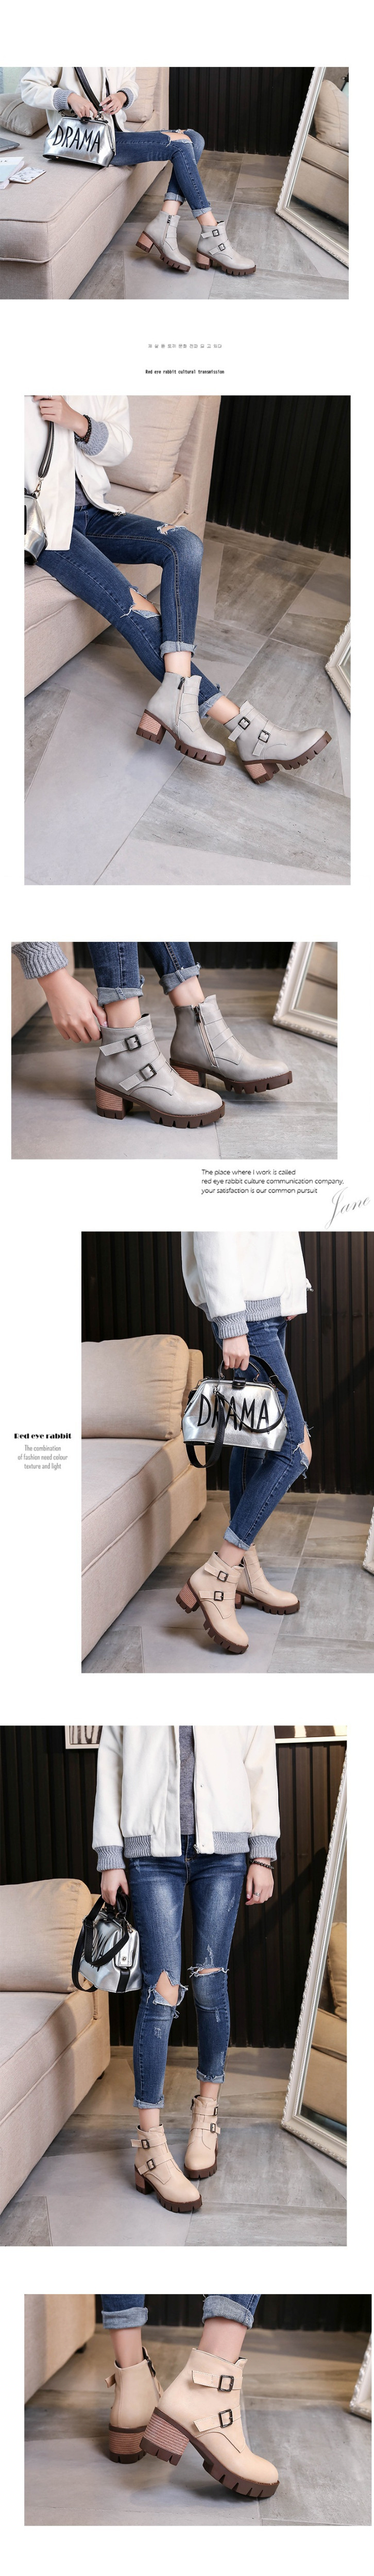 Retro Roman Breathable Shoes Belt Buckle Women's Ankle Booties On Sale Black High Heeled Boots Beige Brown Gray